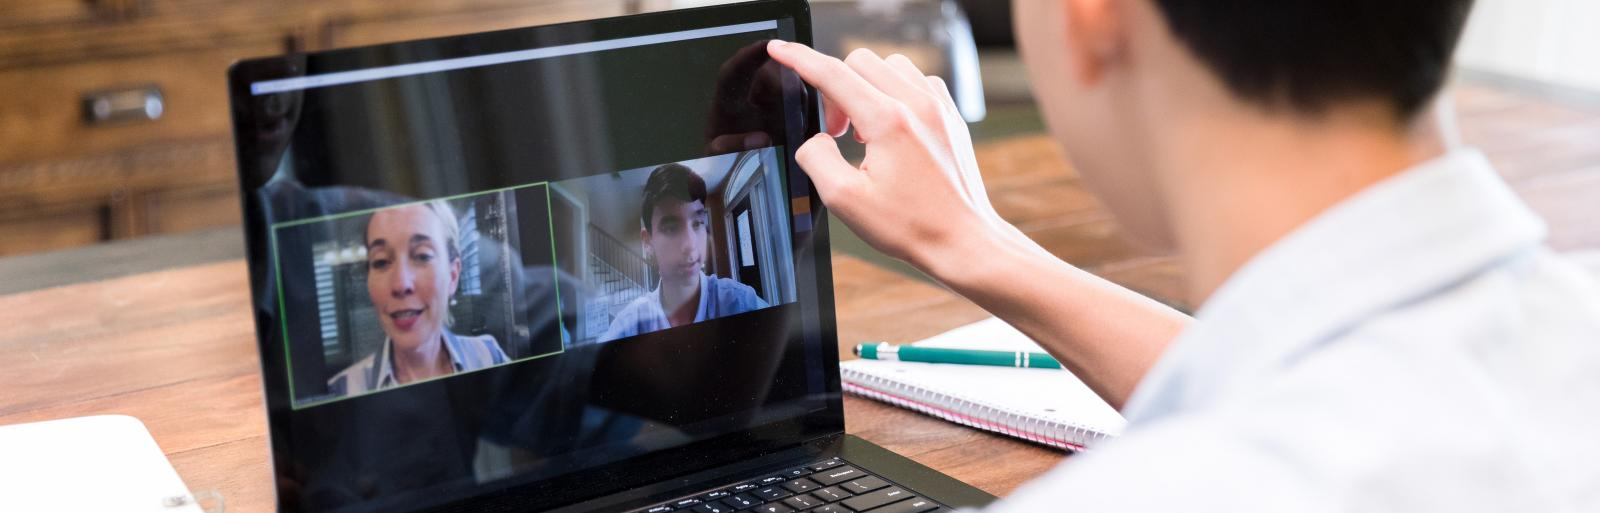 The Catholic School Remote Classroom with male student on remote learning